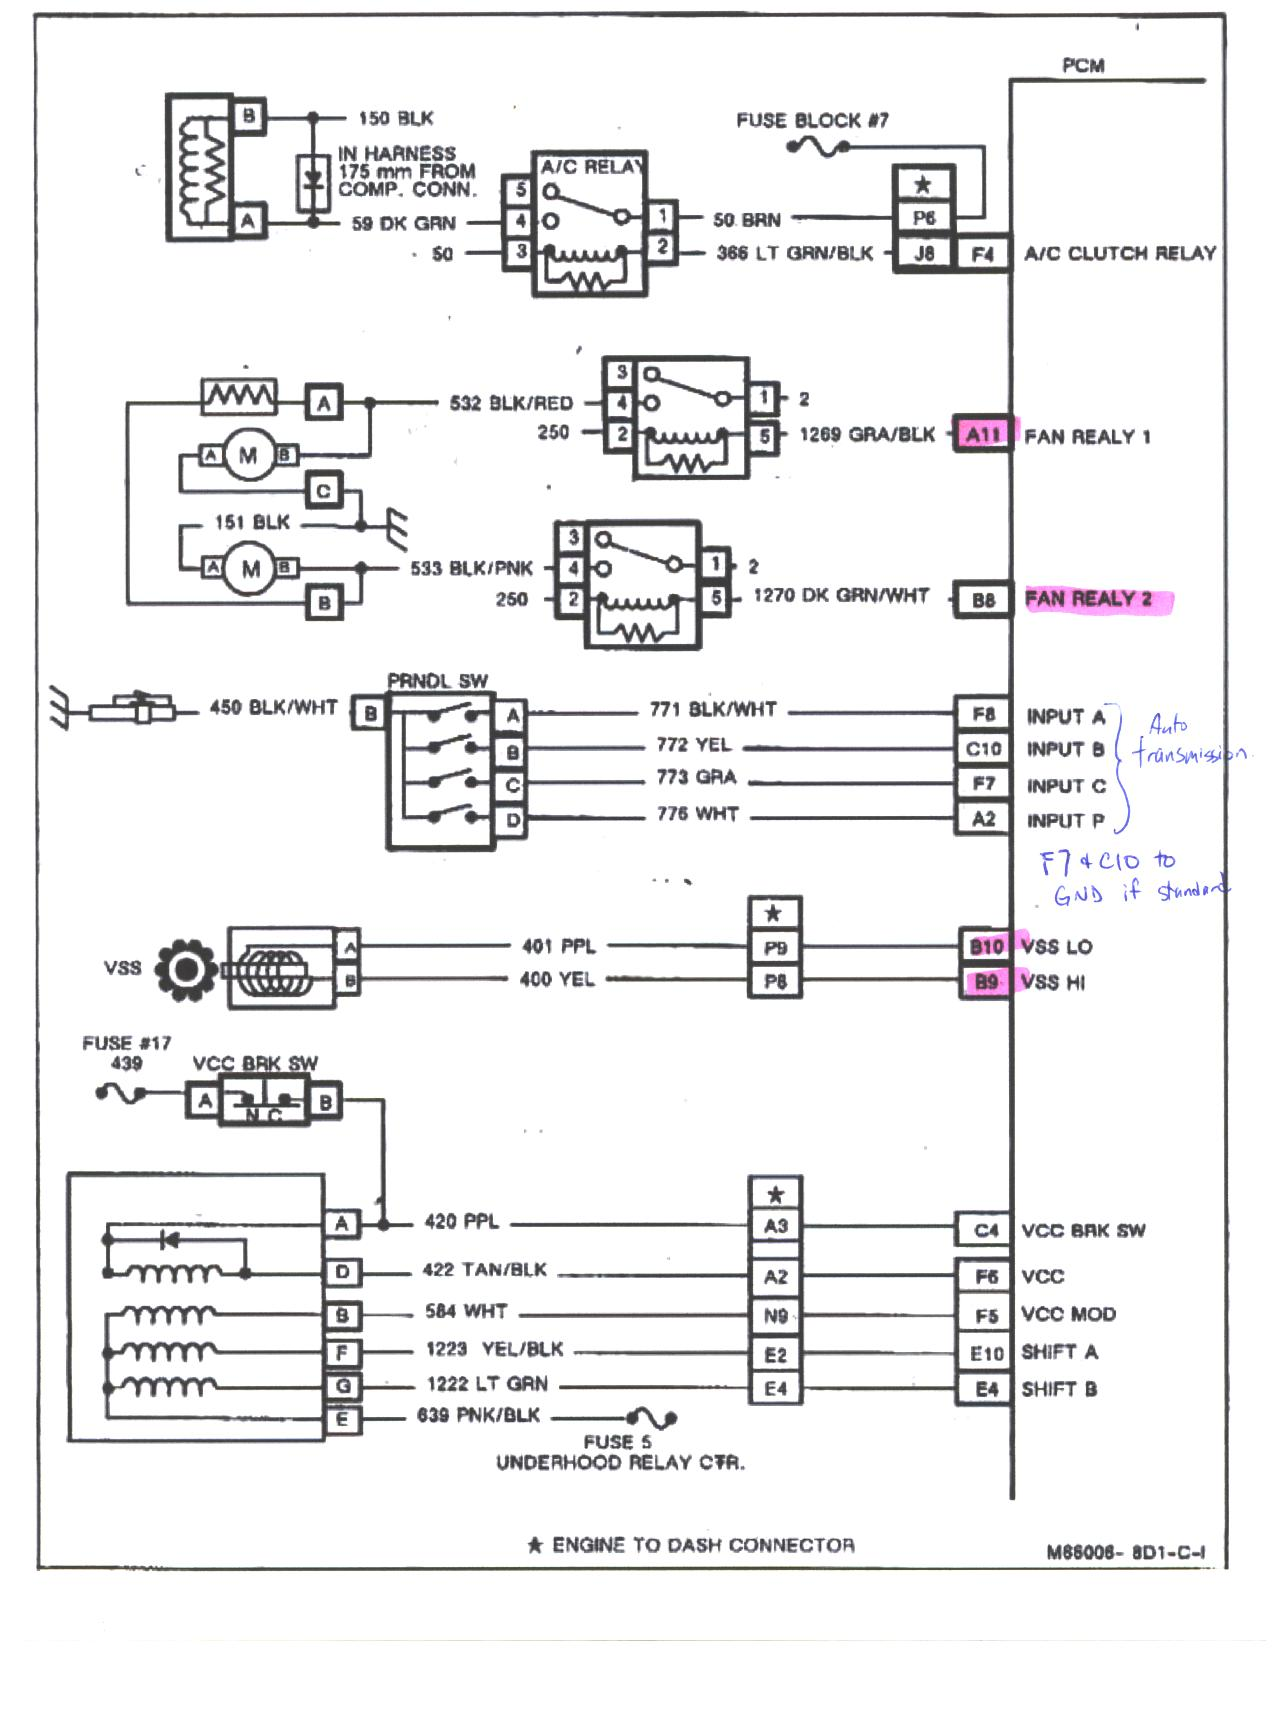 Chevy Astro Van Alternator Wiring Diagram